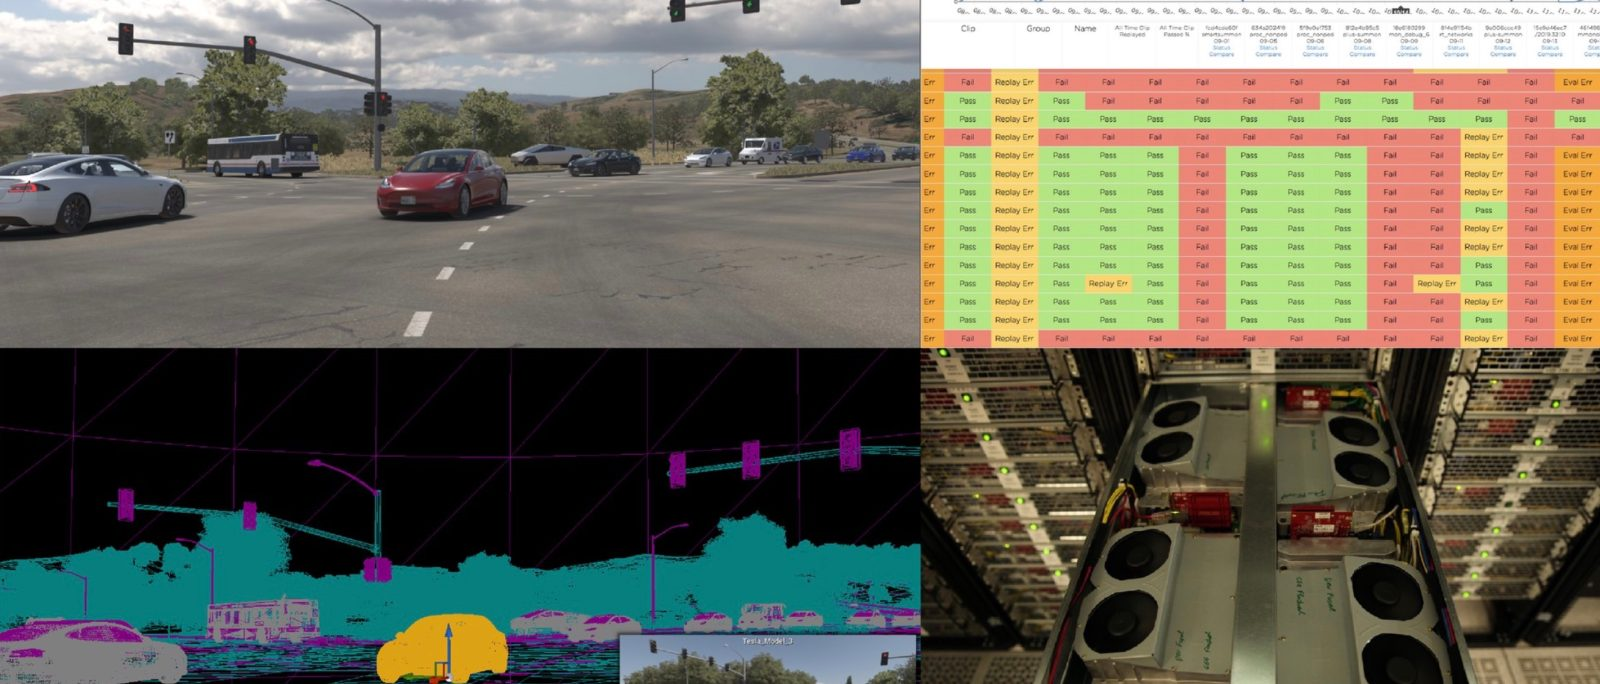 Tesla releases new video of what Autopilot can see, Cybertruck simulation and more